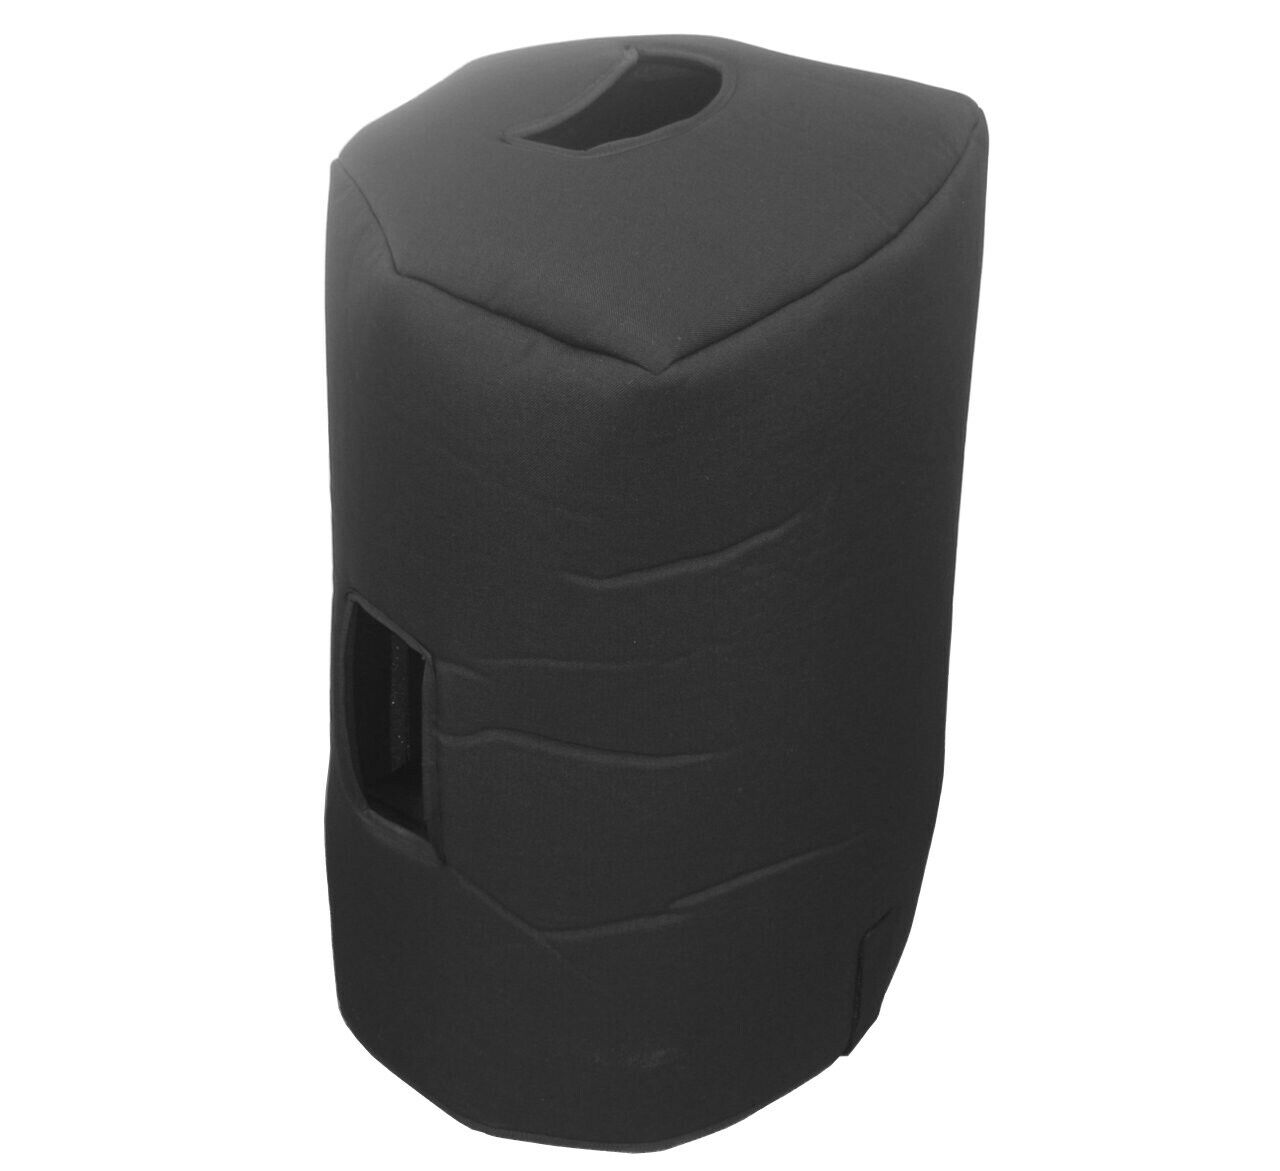 Mackie Thump TH-12A Speaker Cover, schwarz, Water Resistant by Tuki (mack038p)